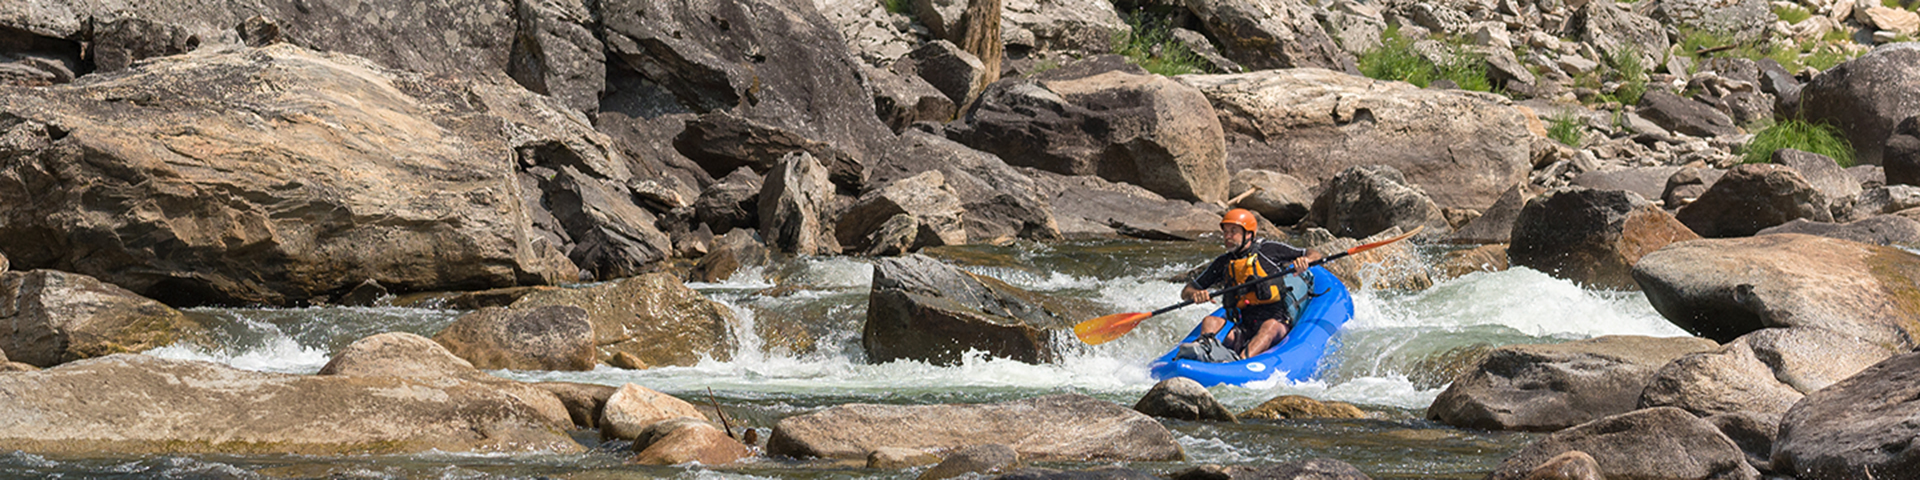 Kayaks: Expedition by AIRE - Image 4403